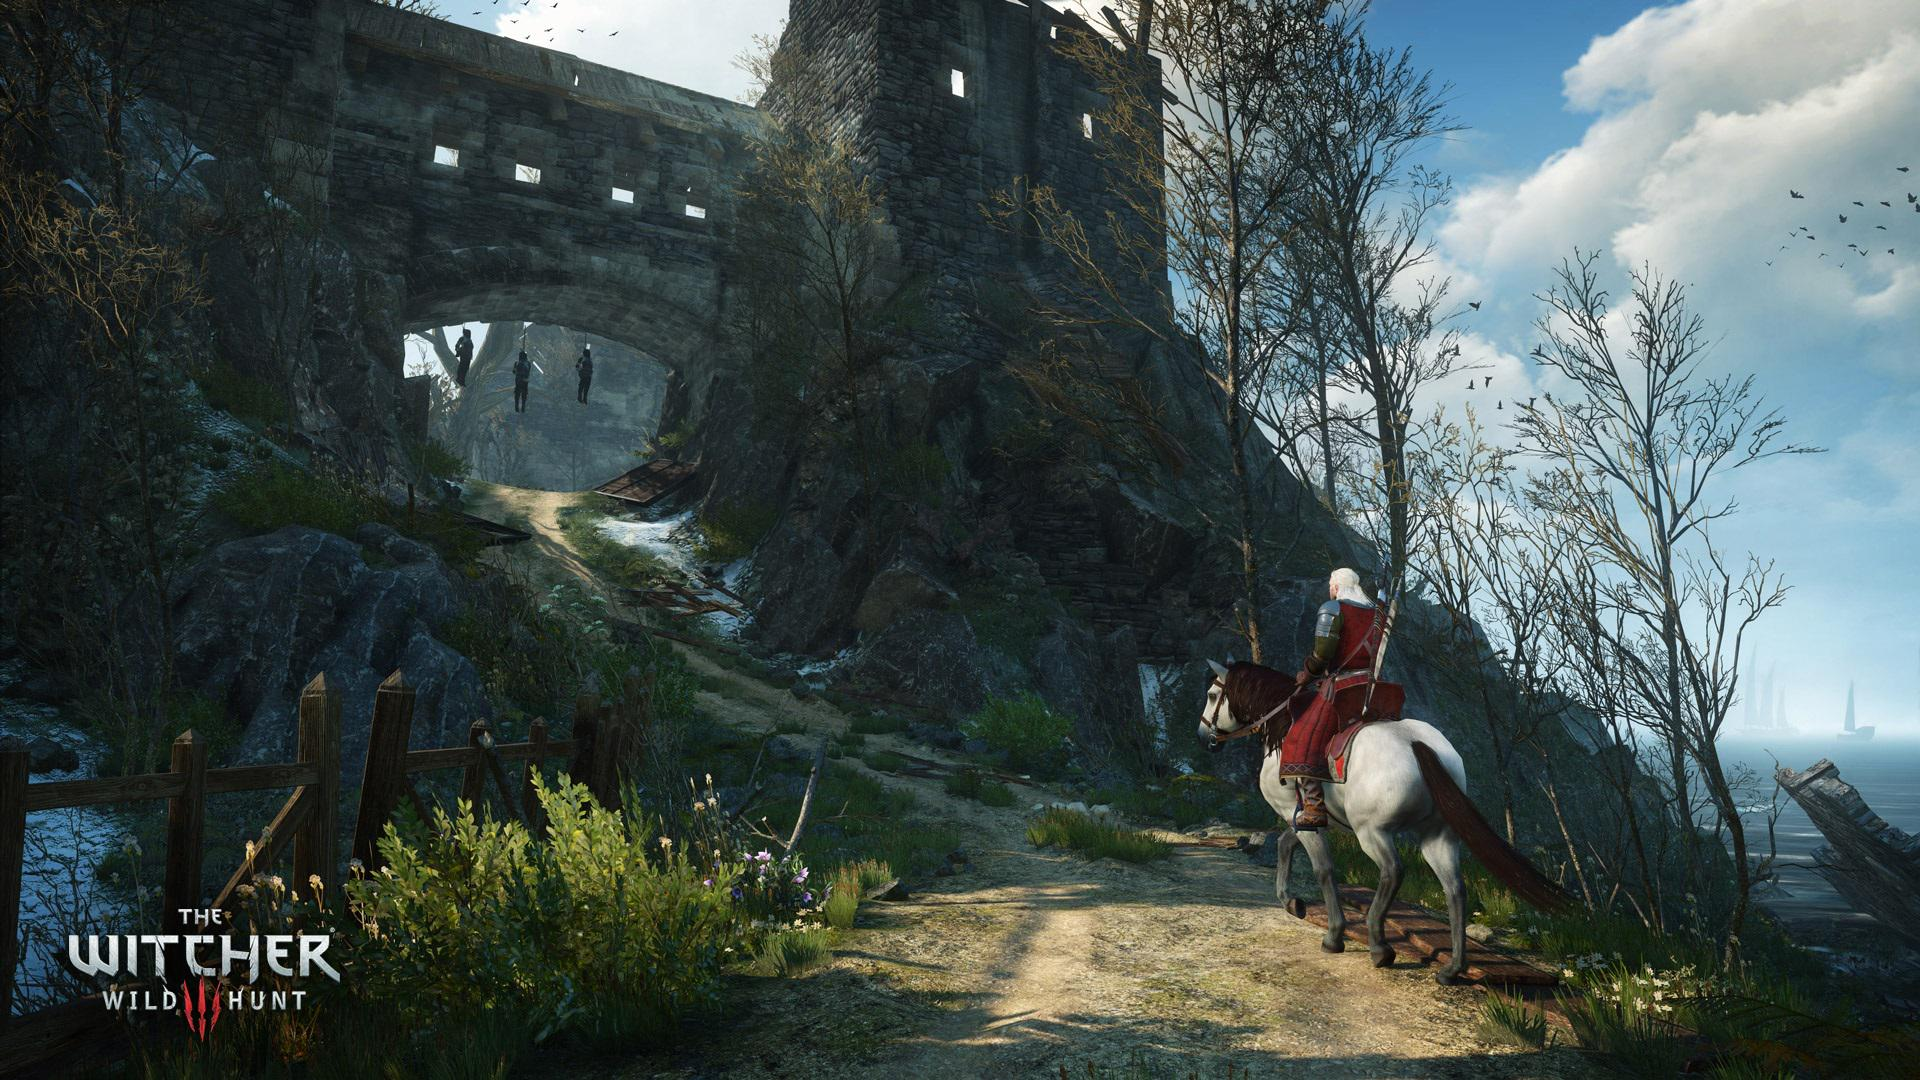 You Can Travel By Water To Other Islands In The Witcher 3